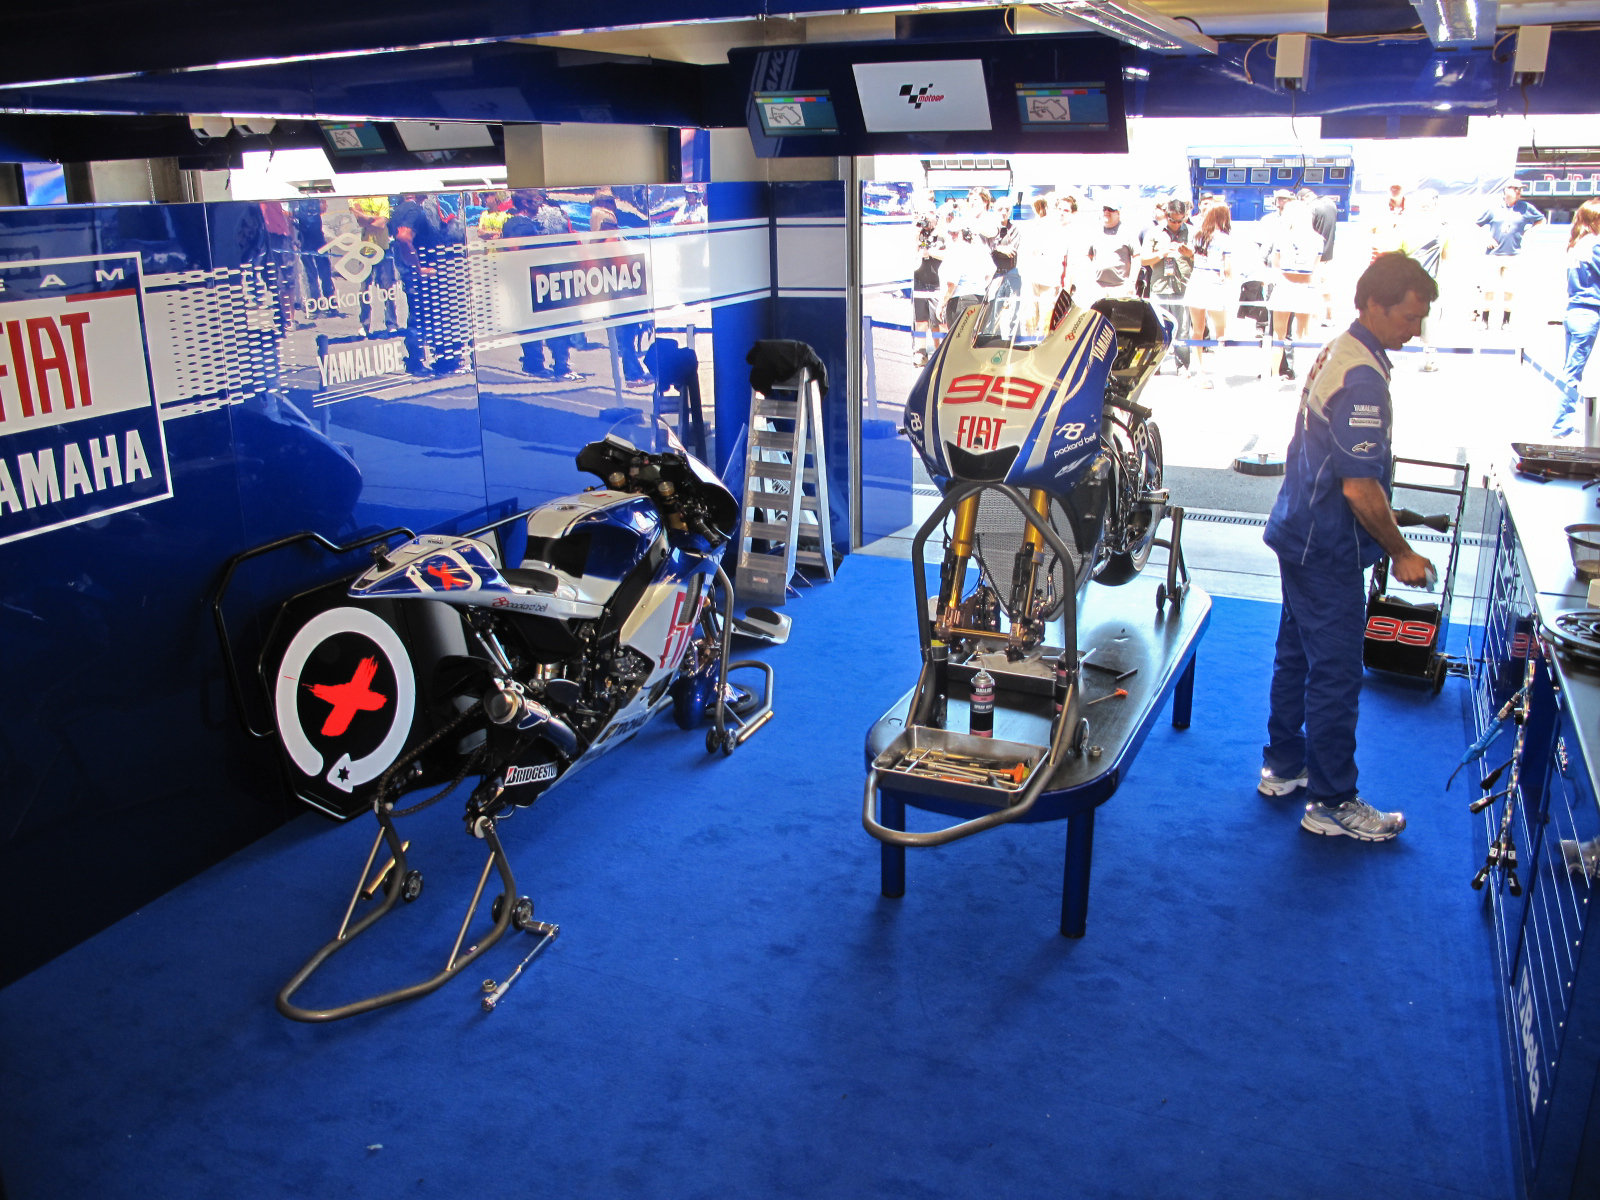 yamaha pit stop at mazda raceways picture 309940